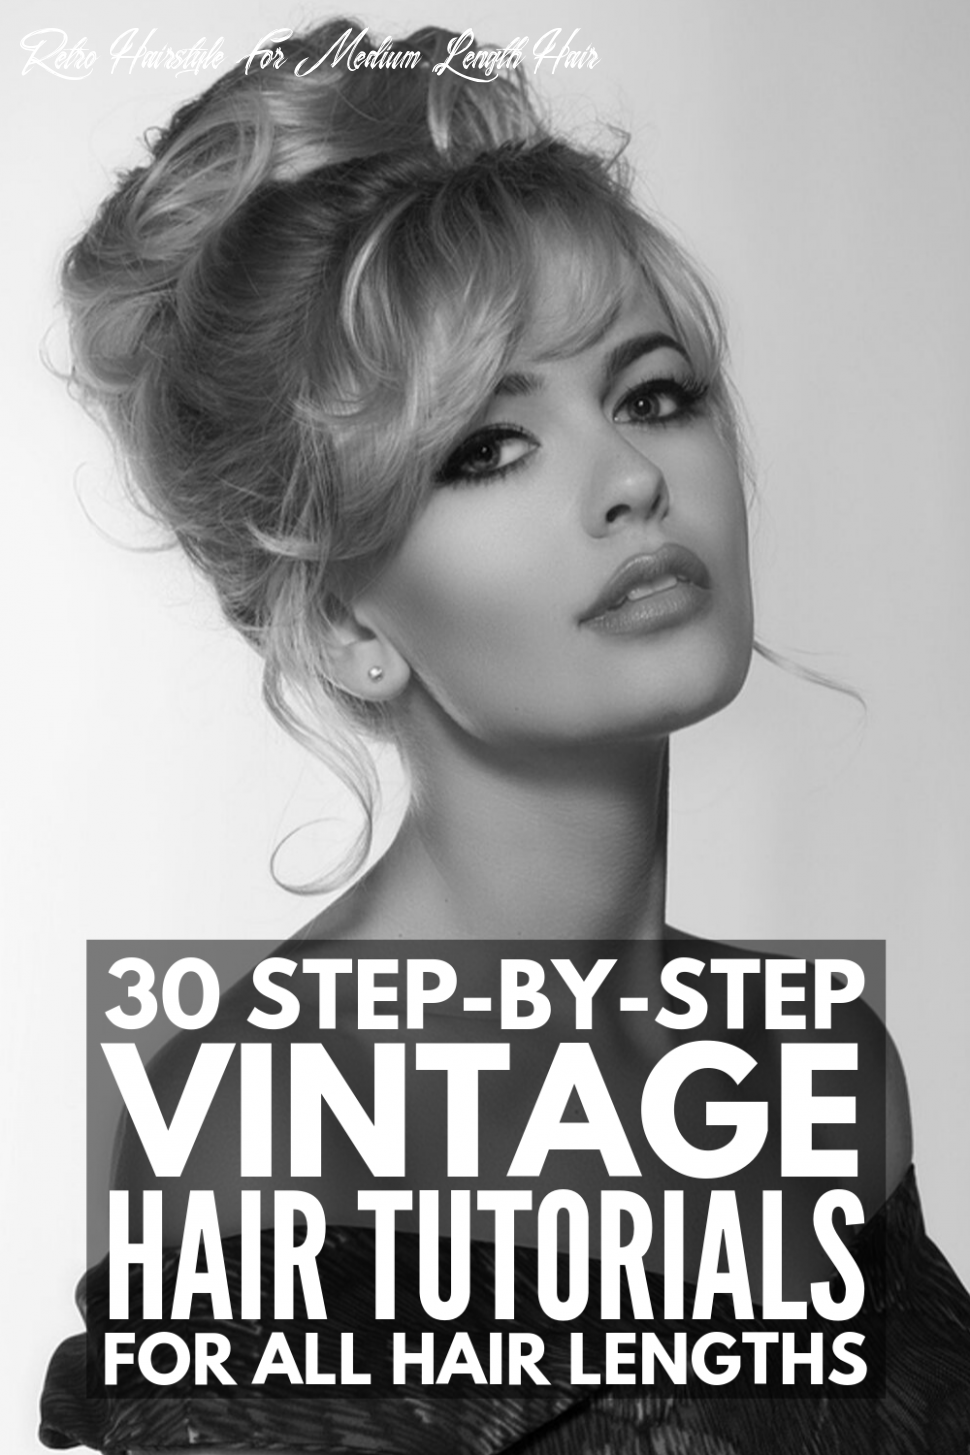 12 Step-by-Step Vintage Hairstyles for All Hair Lengths | Hair ...